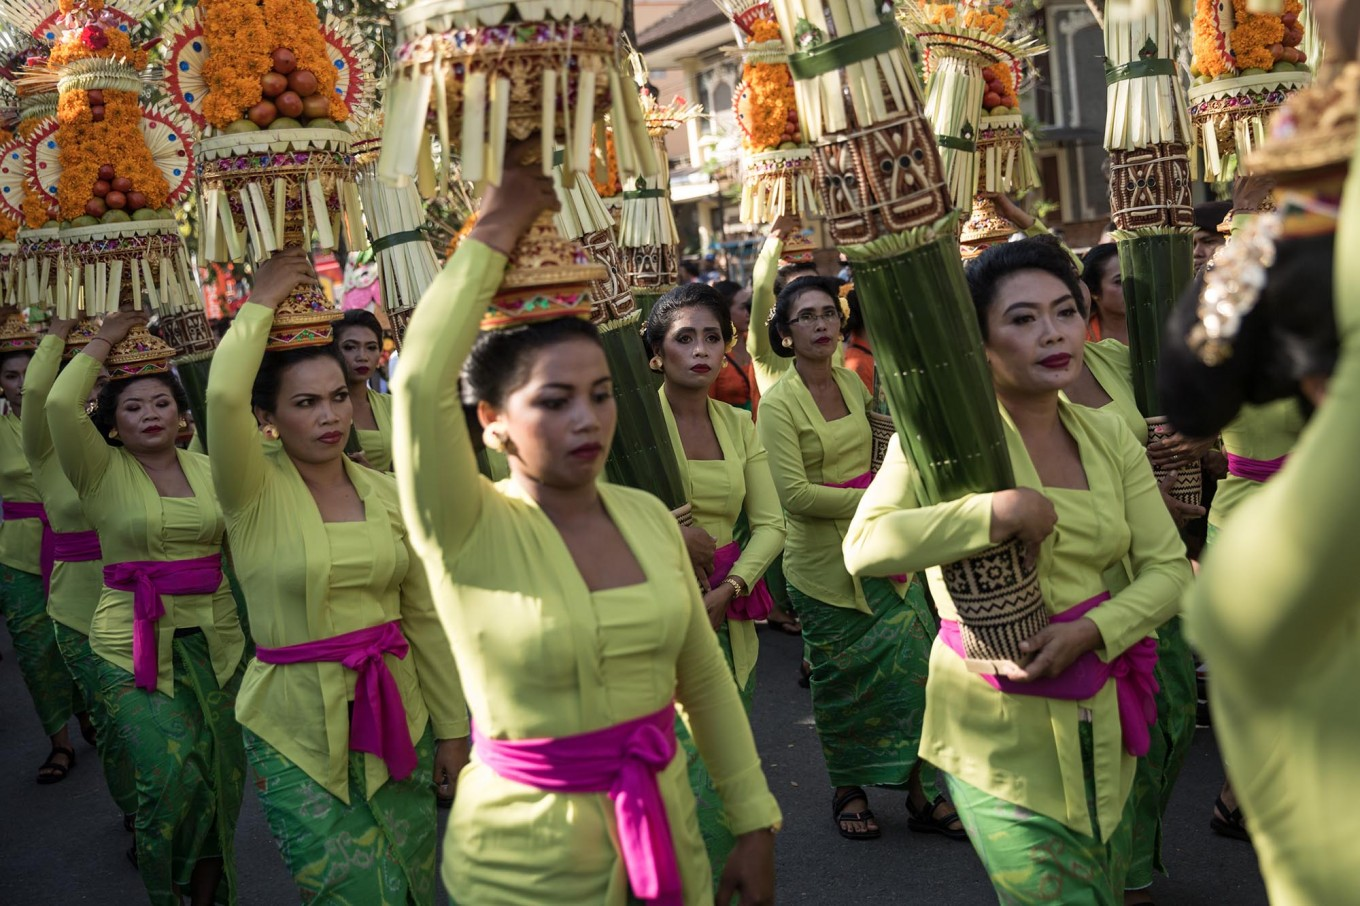 Balinese women carry gebongan (offerings) during the opening of the 39th Bali Art Festival at the Bajra Sandhi Monument in Denpasar. JP/Agung Parameswara